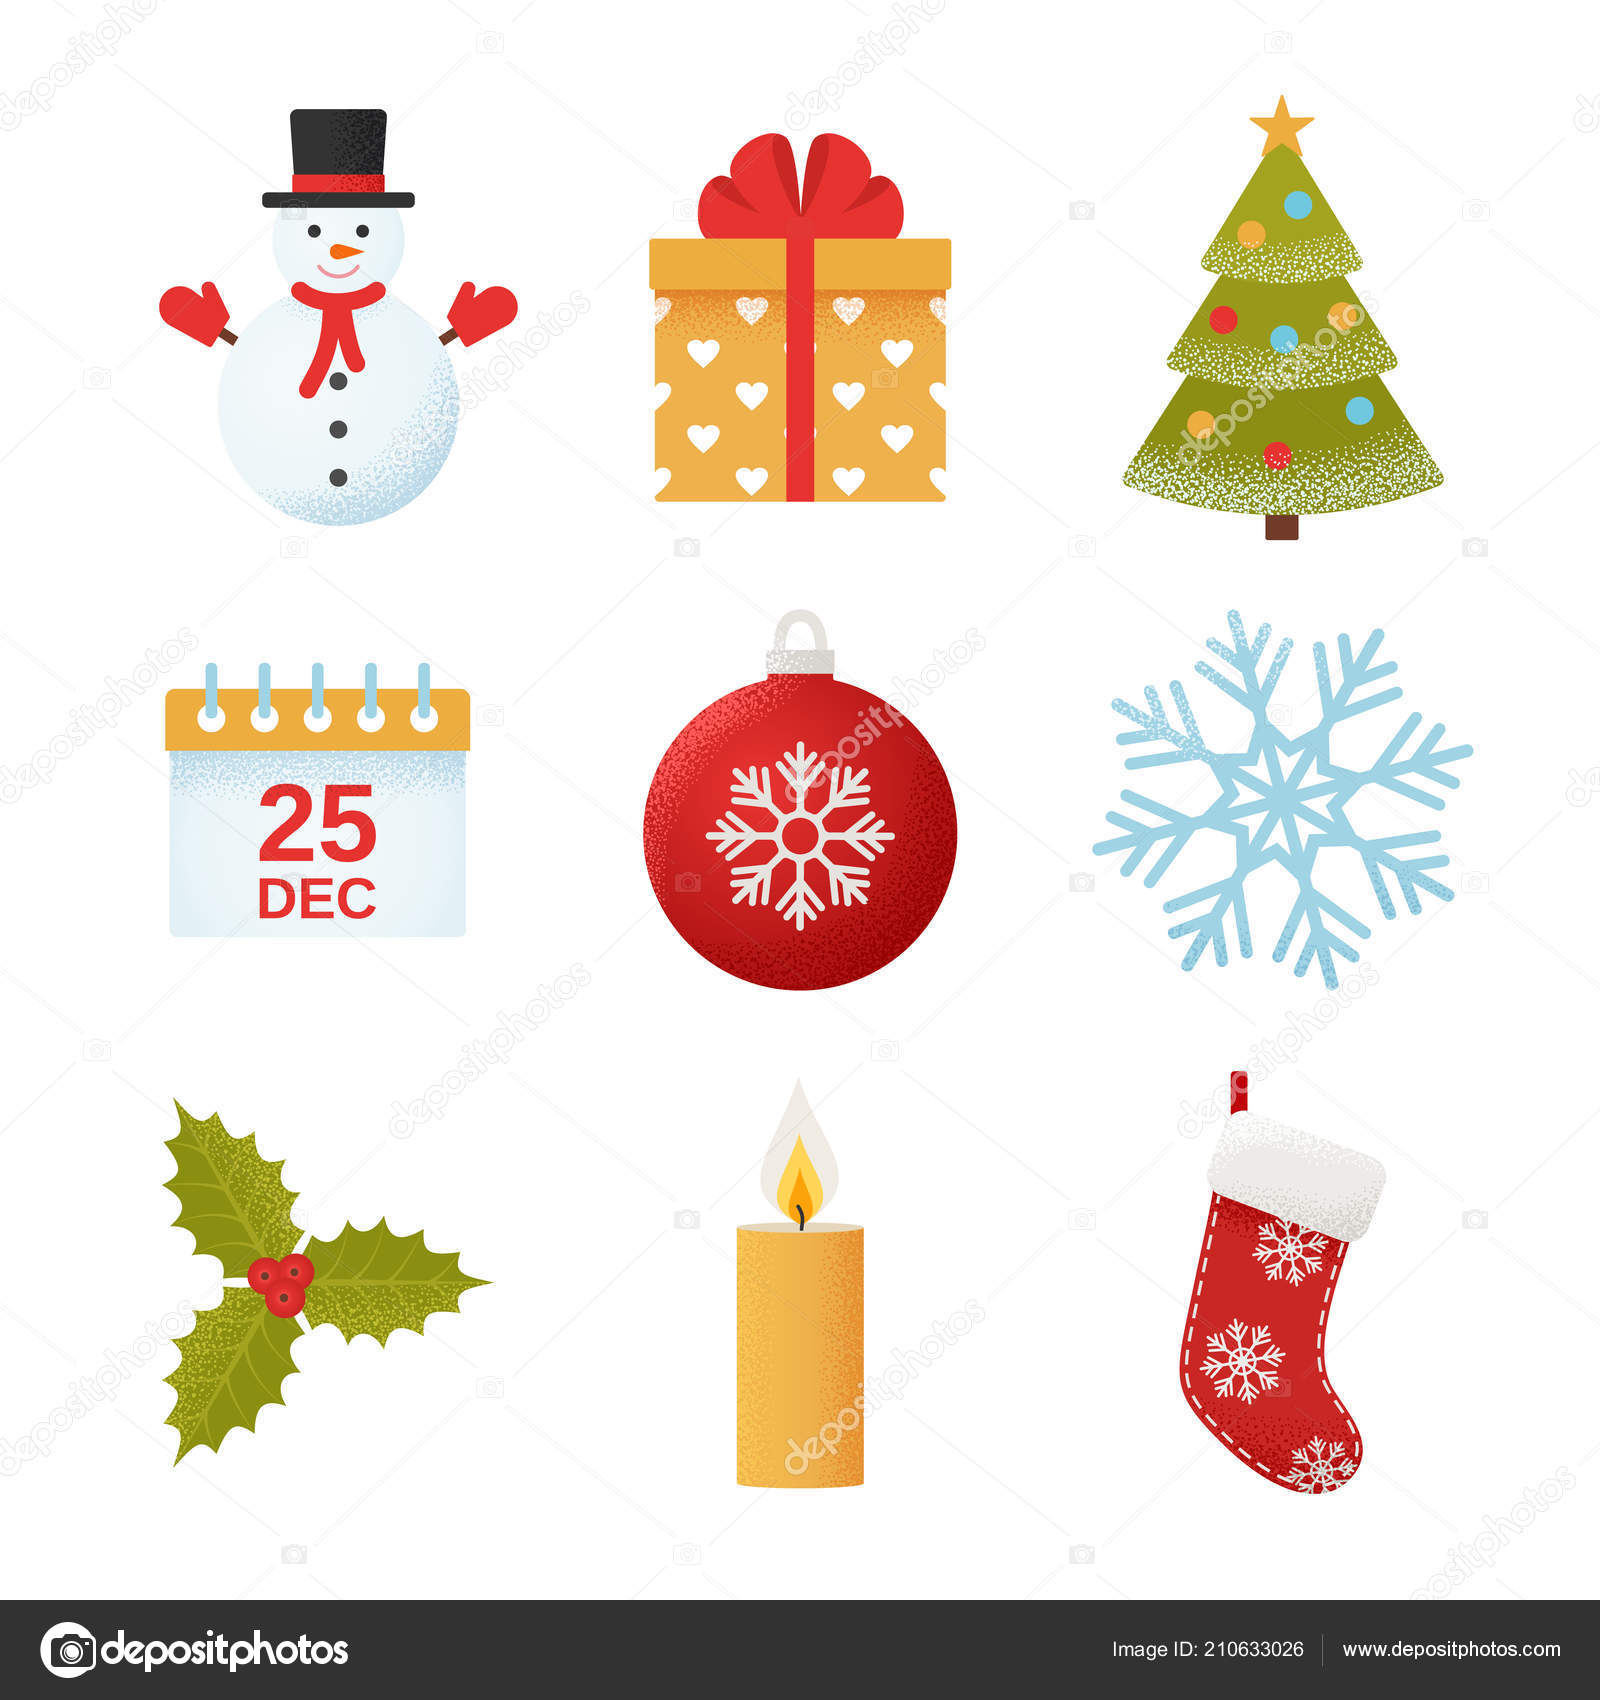 Christmas Icon.Christmas Icon Vector Winter Icons Set Flat Design Isolated